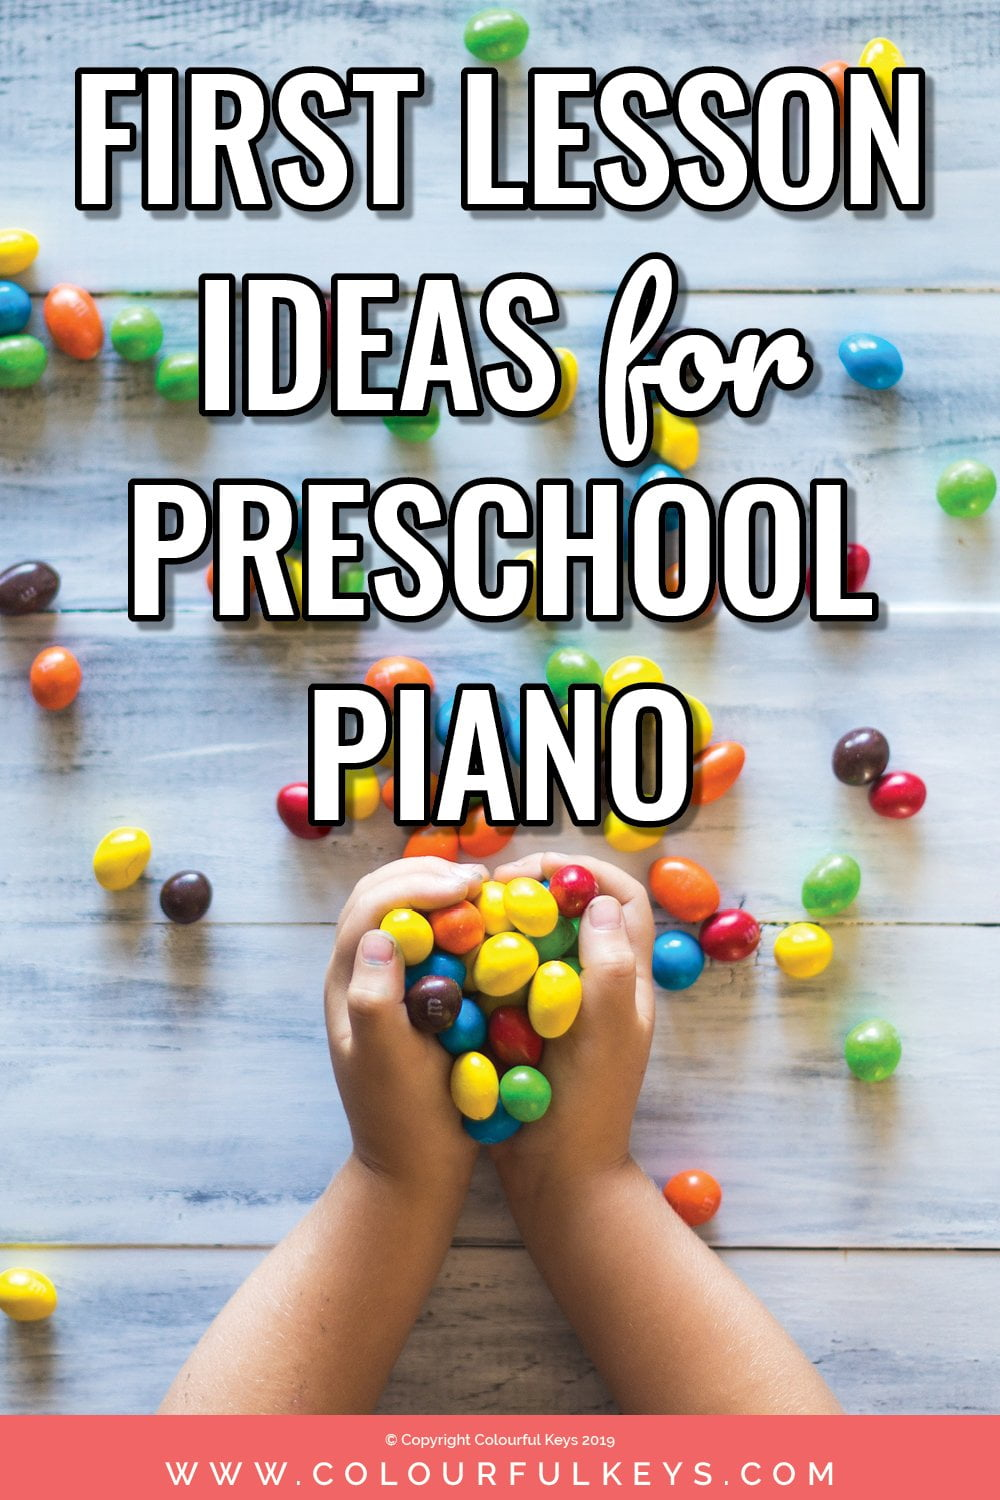 Great ideas for first piano lessons with preschool students. Practical and effective advice for piano teachers.